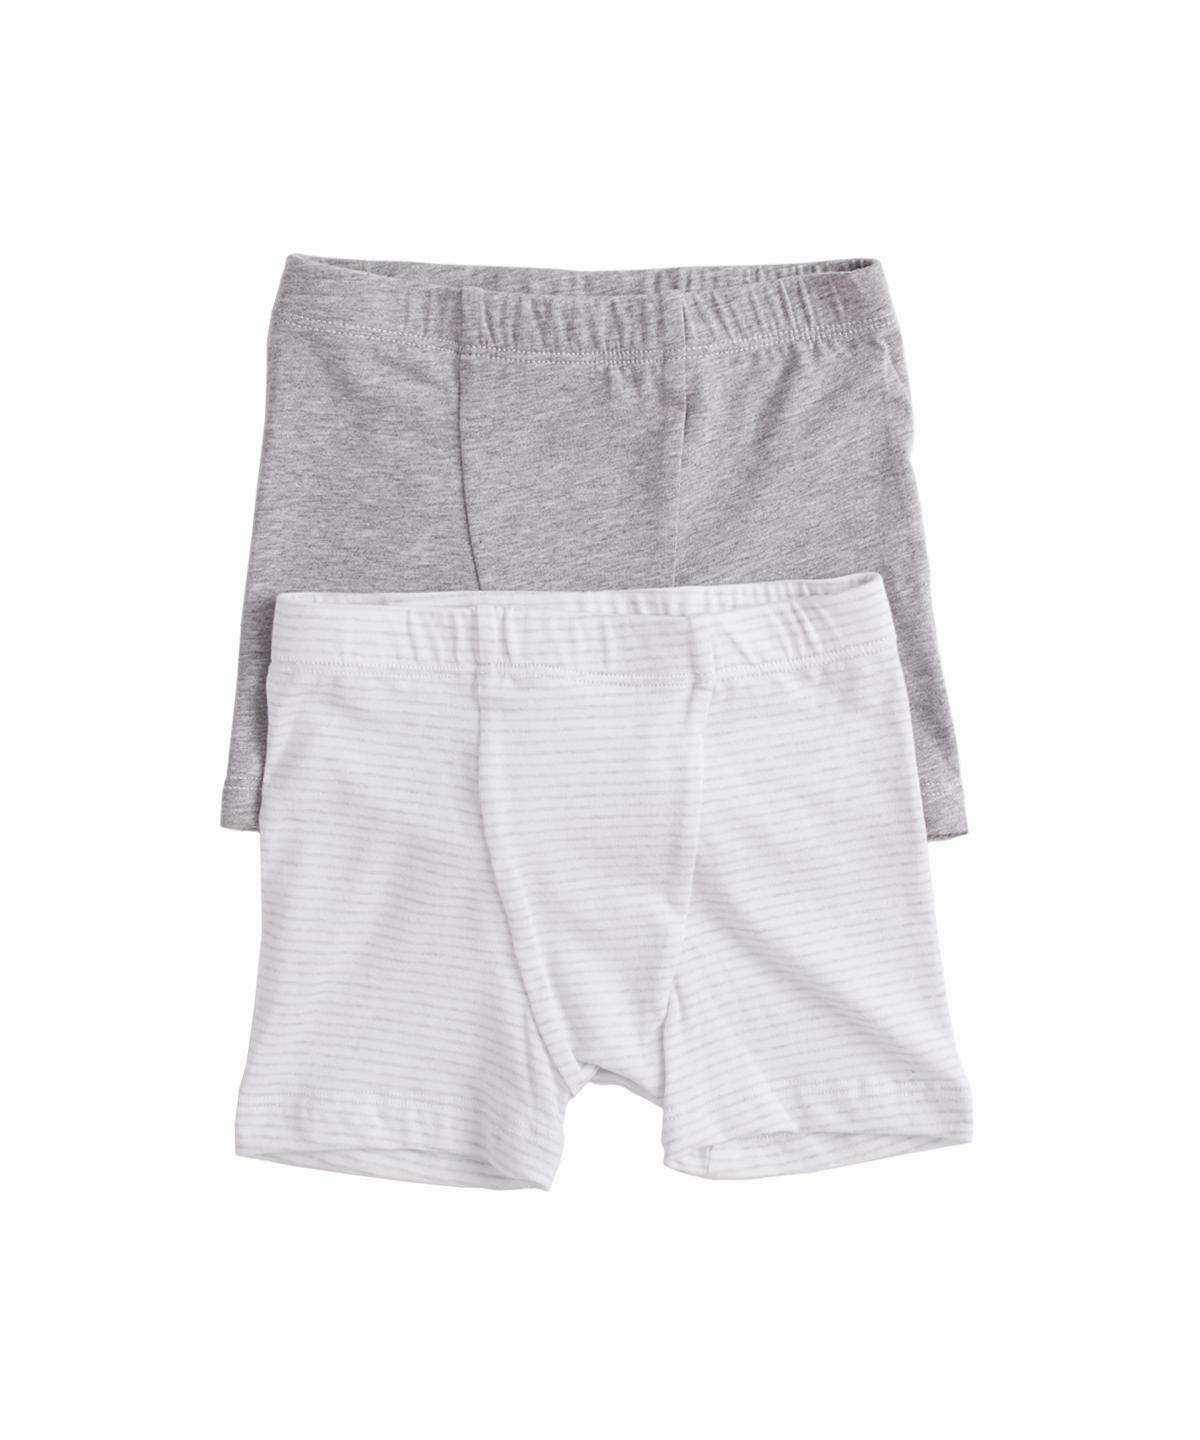 Set of 2 Grey Stripe Boxers